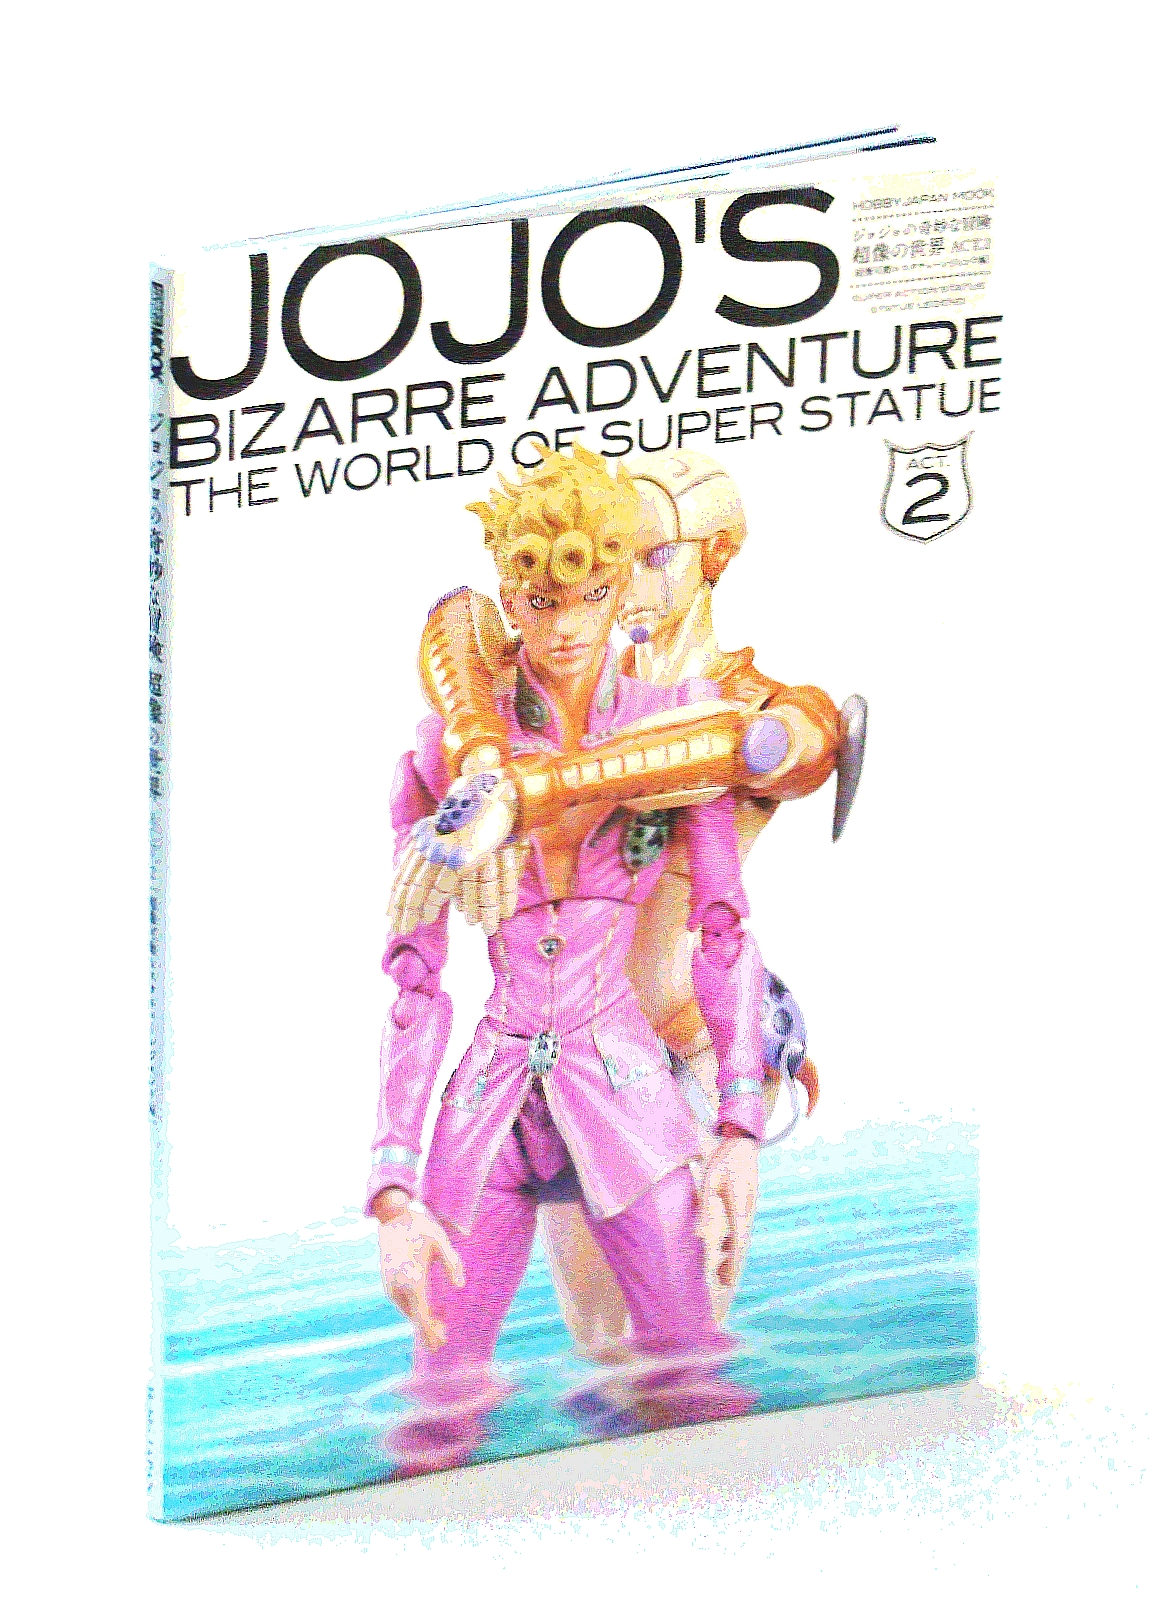 Image for JoJo's Bizarre Adventure ~ The World of Super Statue ACT.2 Super Action Statue & Statue Legend Guide Book ~ (Hobby Japan Mook 511) [Japanese Edition] [JE]